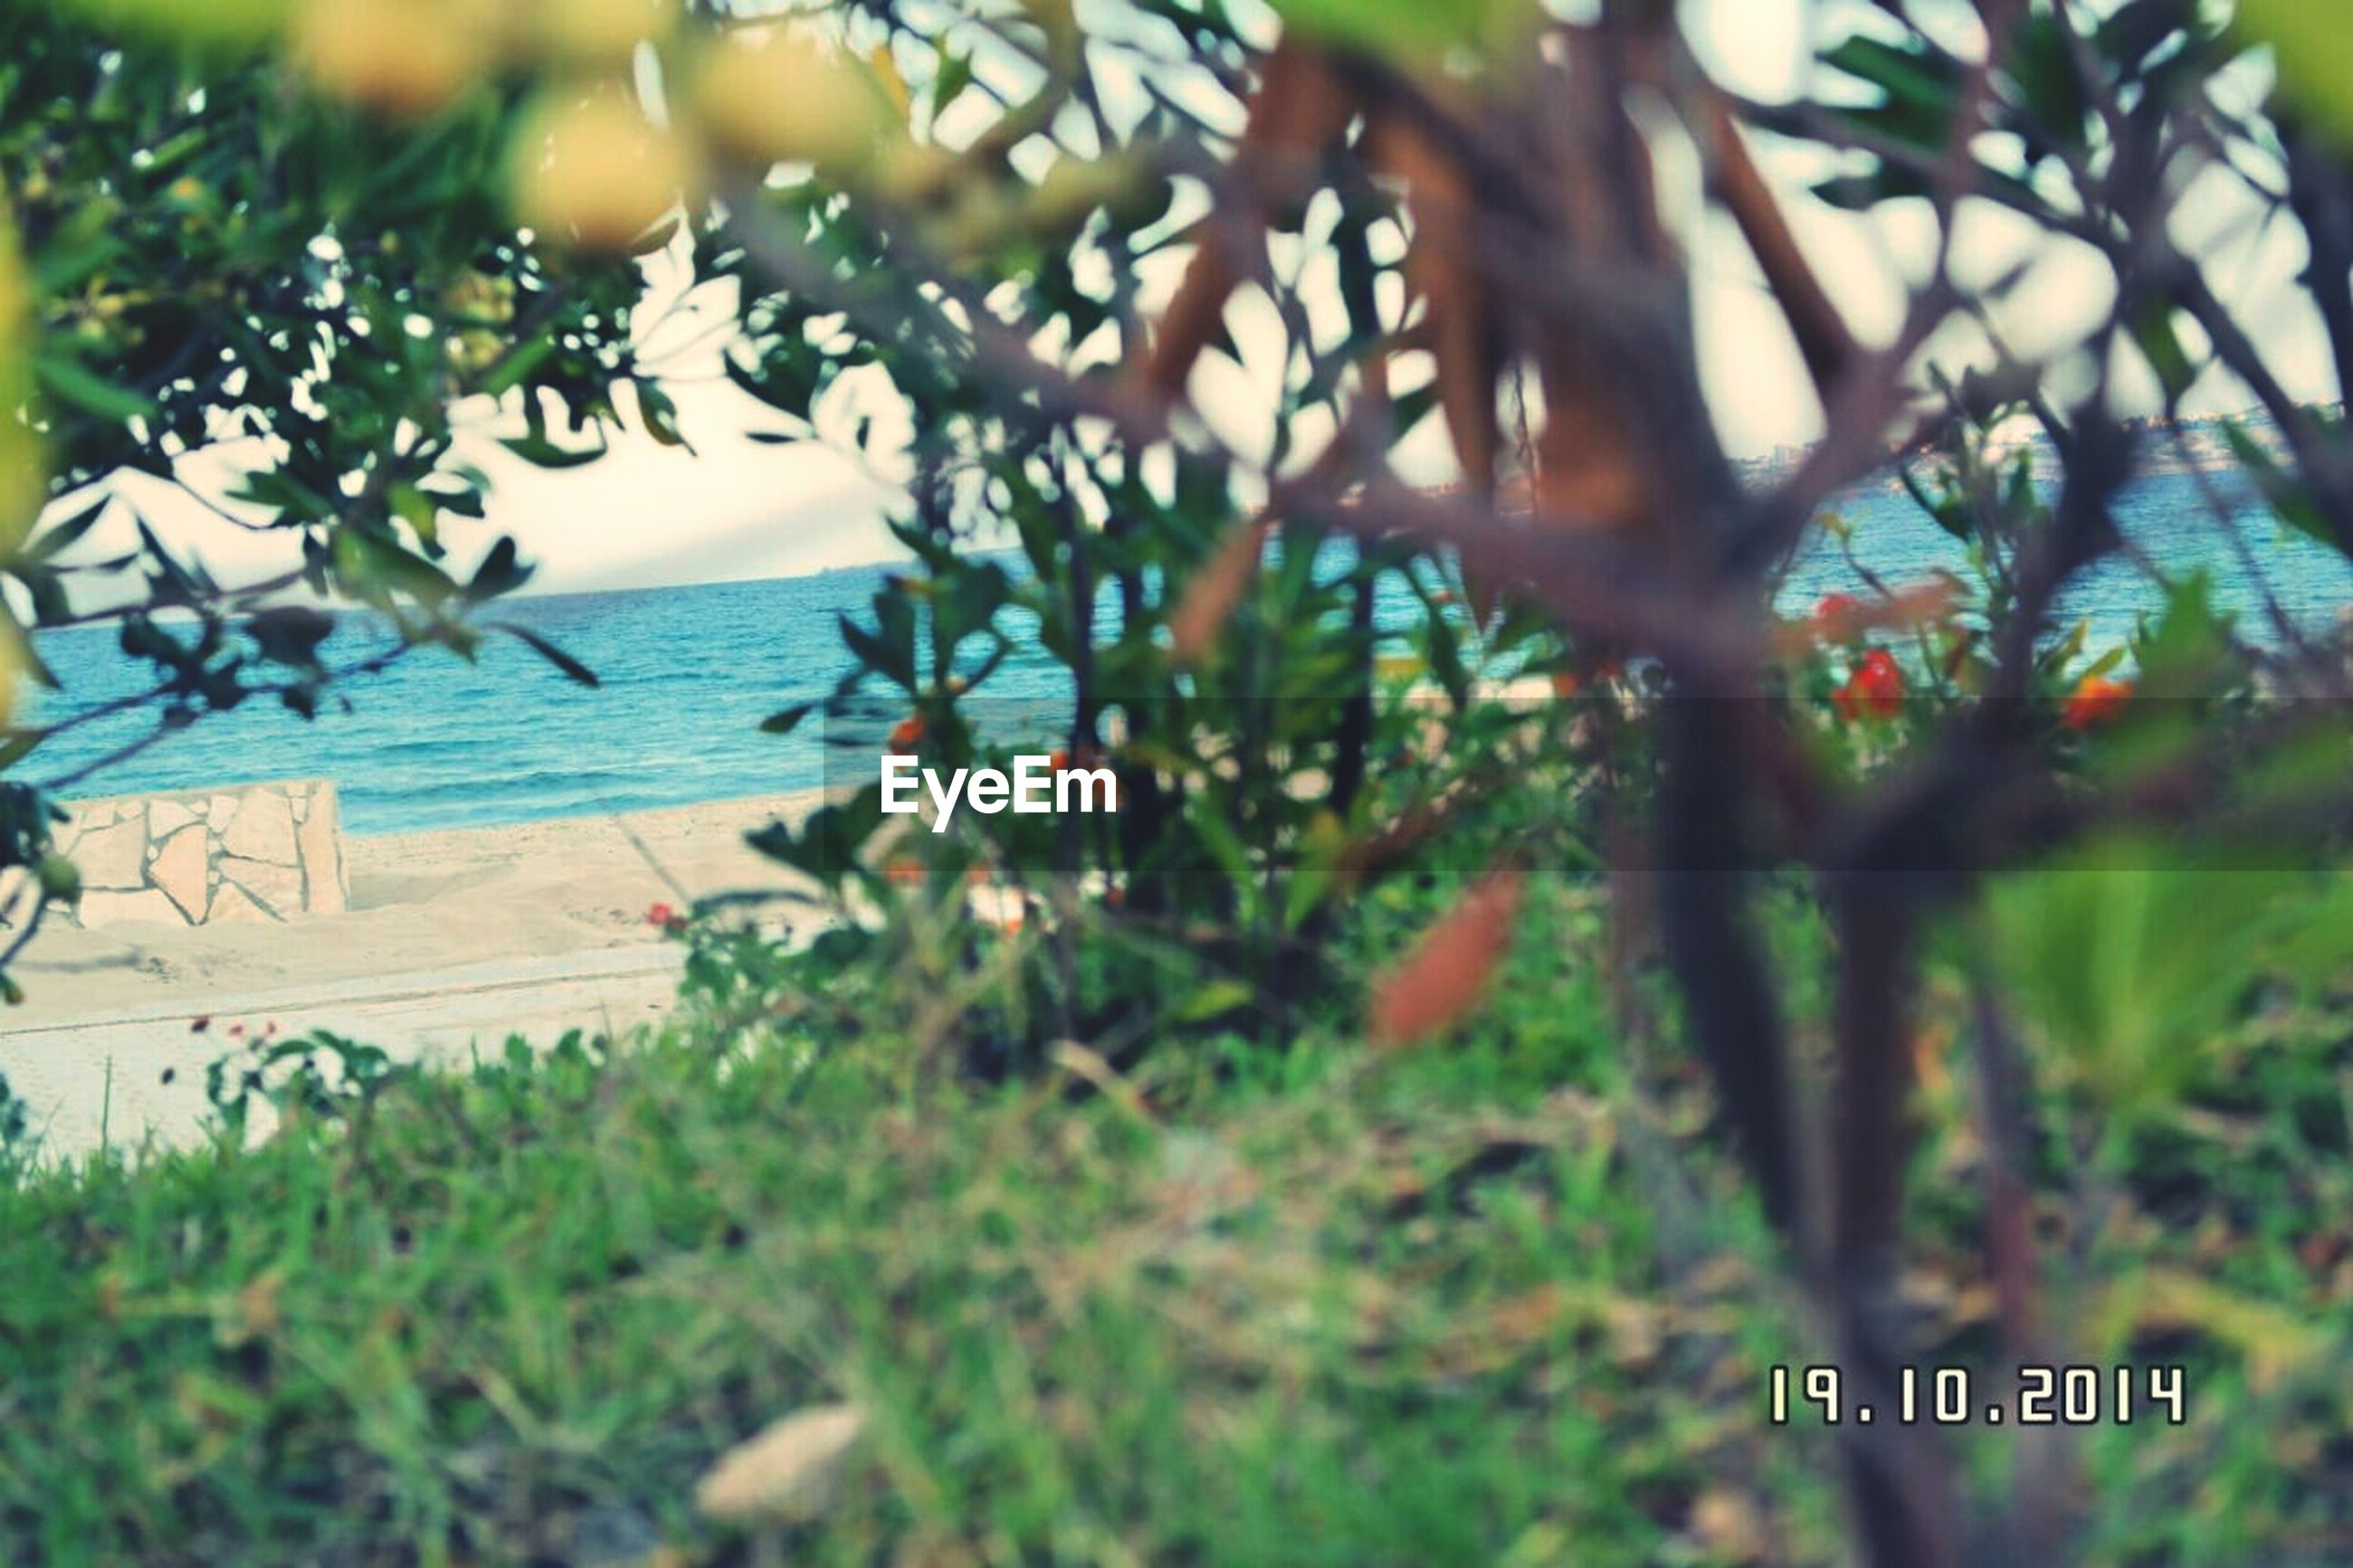 tree, growth, water, plant, nature, tranquility, green color, tranquil scene, text, focus on foreground, sea, day, branch, beauty in nature, outdoors, beach, no people, scenics, leaf, close-up